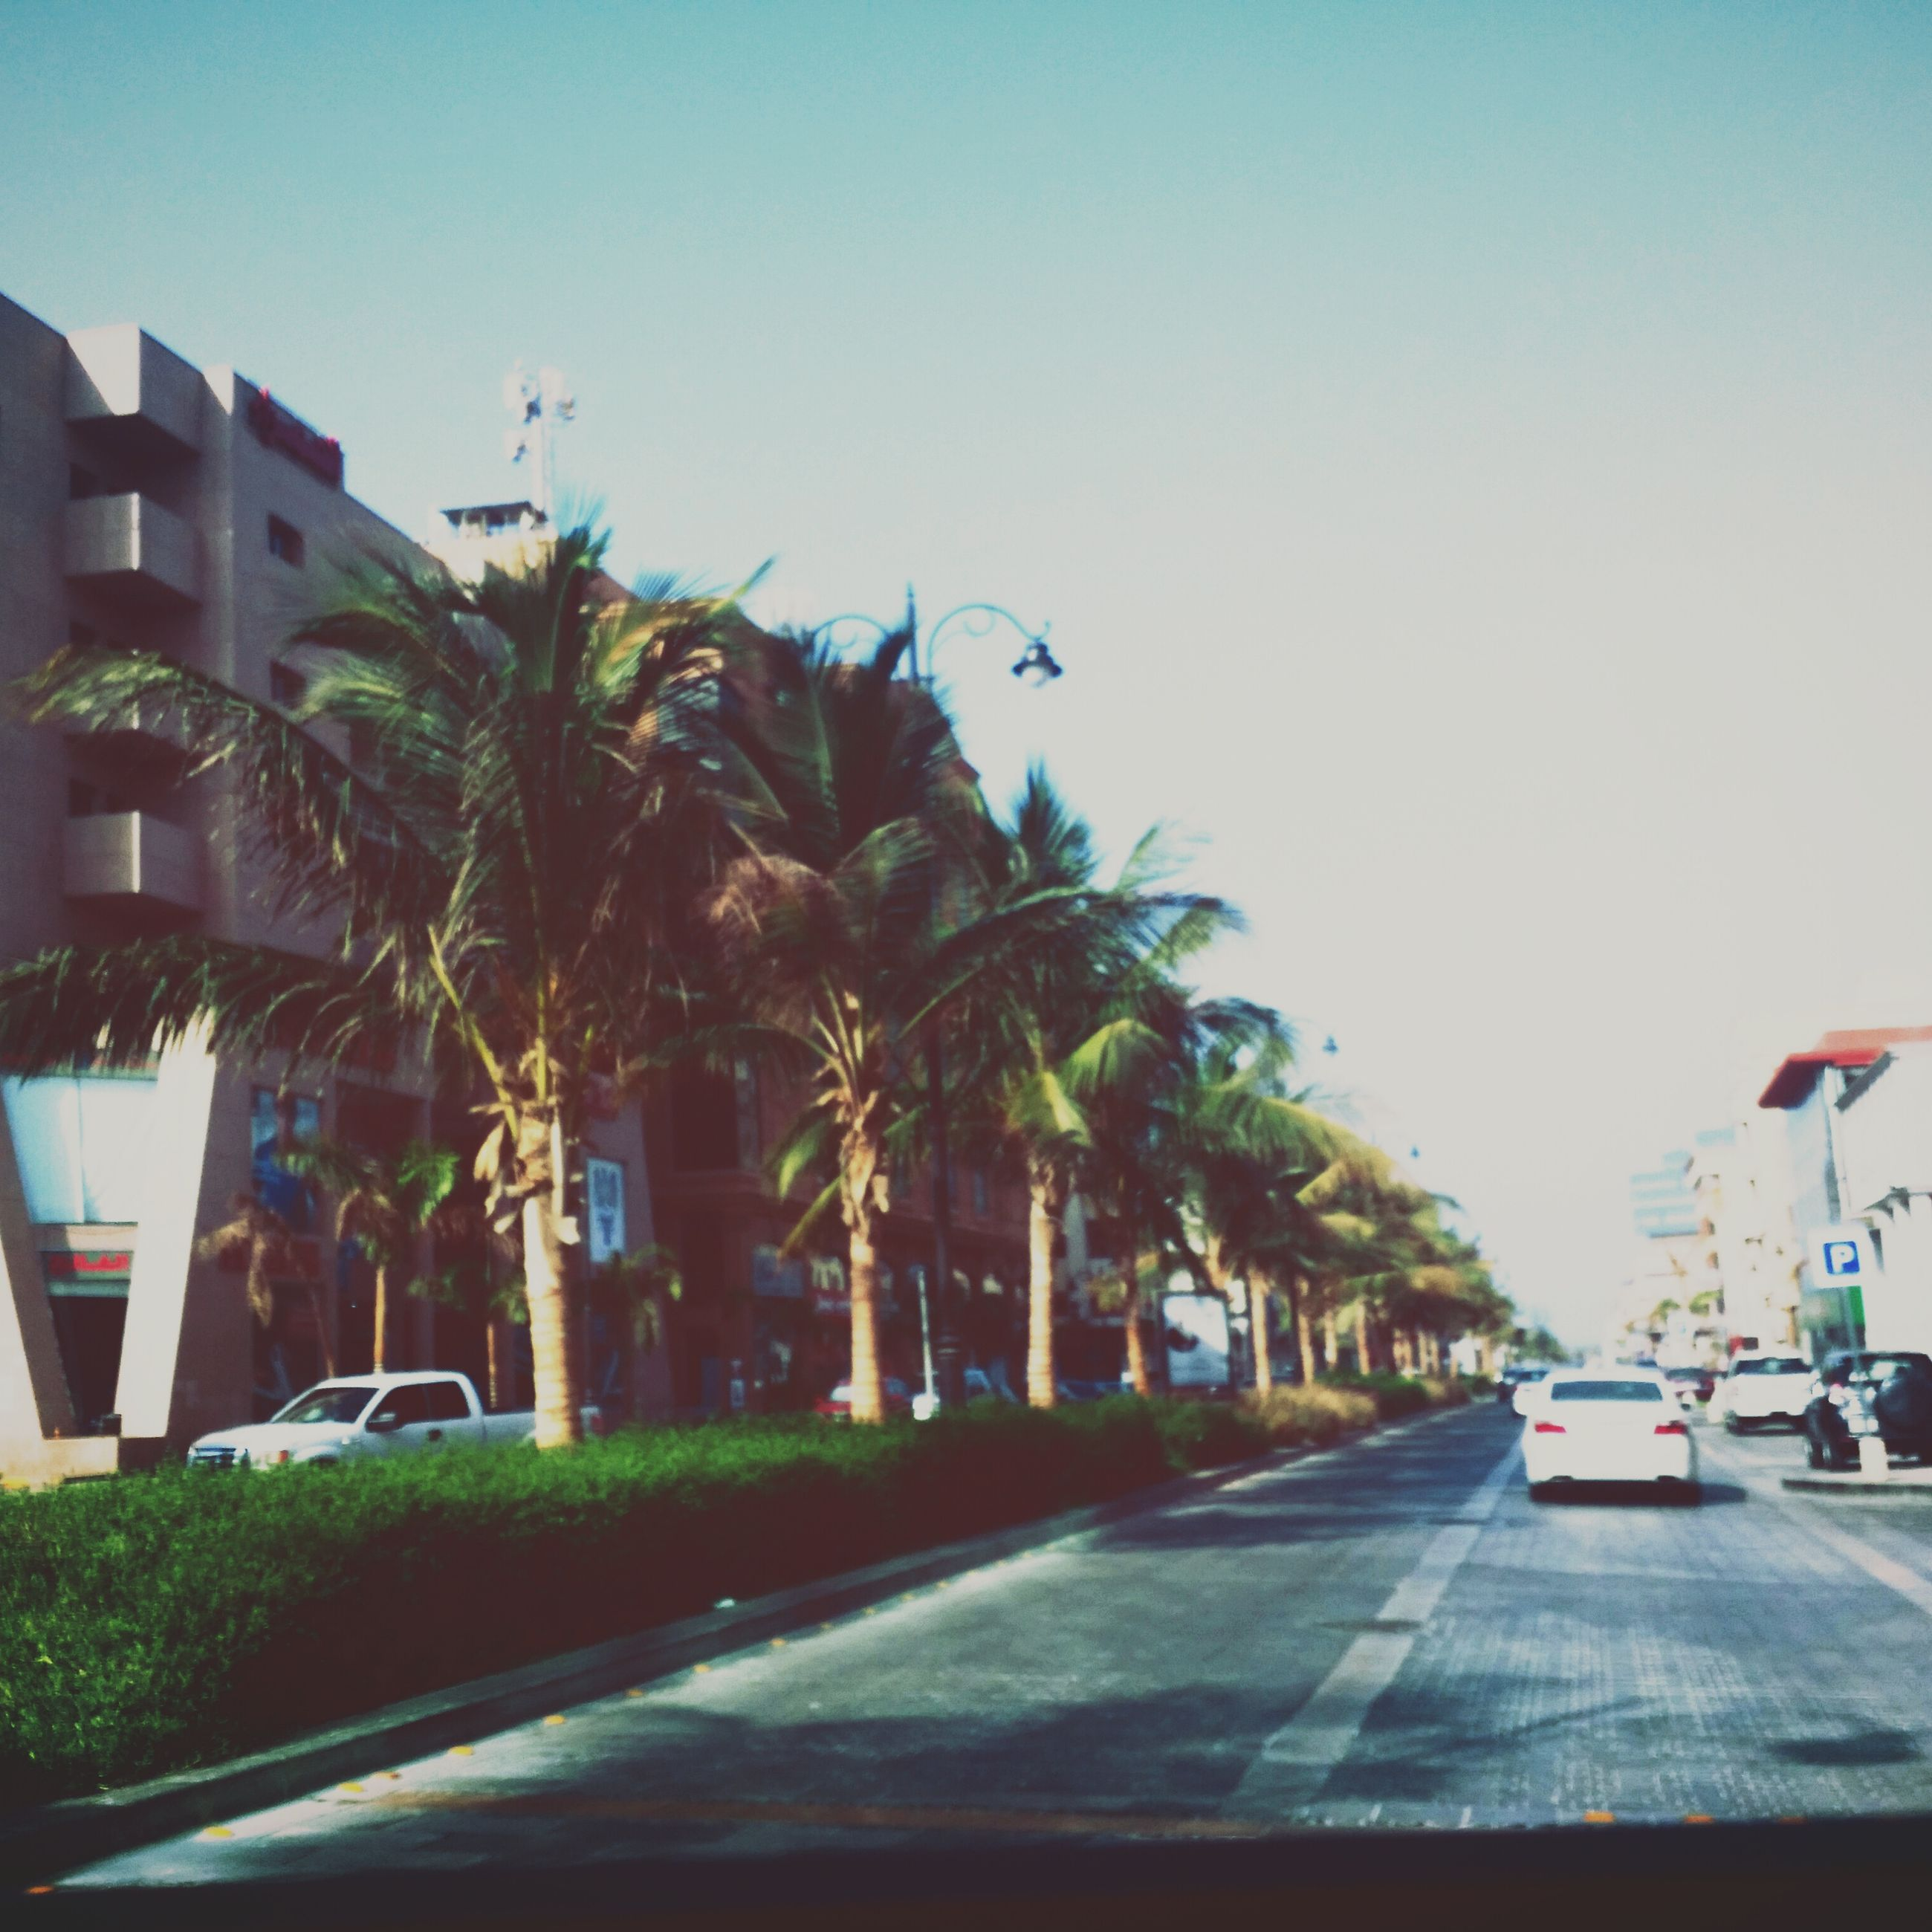 transportation, road, clear sky, car, tree, road marking, street, the way forward, building exterior, palm tree, built structure, architecture, land vehicle, mode of transport, street light, copy space, blue, city, sky, diminishing perspective